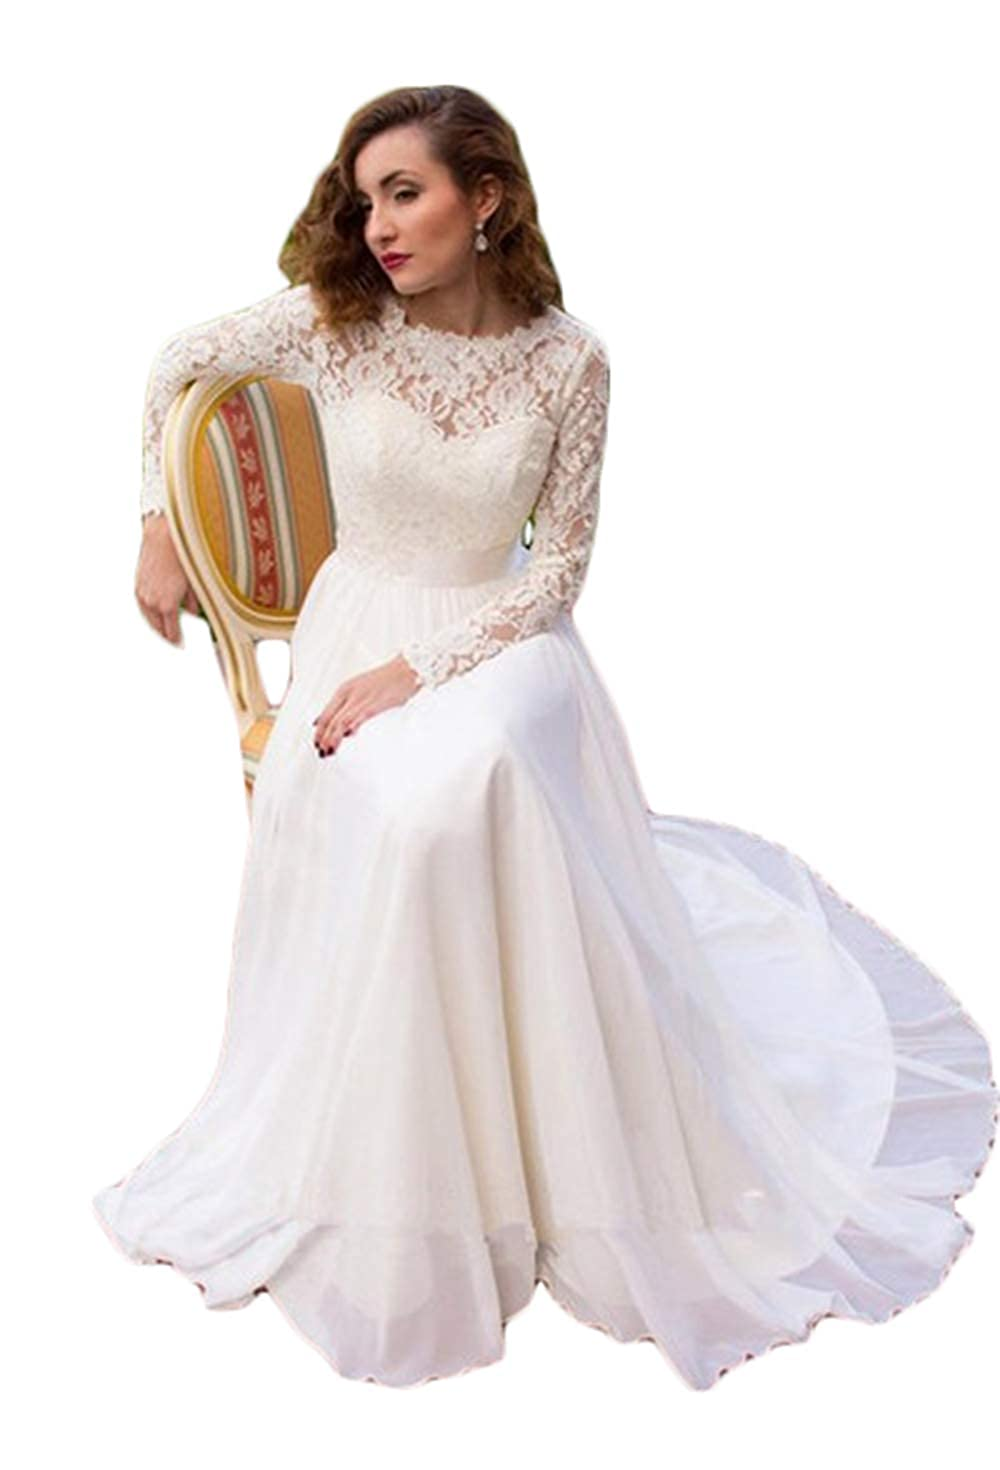 Ivory Women's Long Sleeve Lace Wedding Dresses Bridal Gown Beach Wedding Dresses for Bride 2019